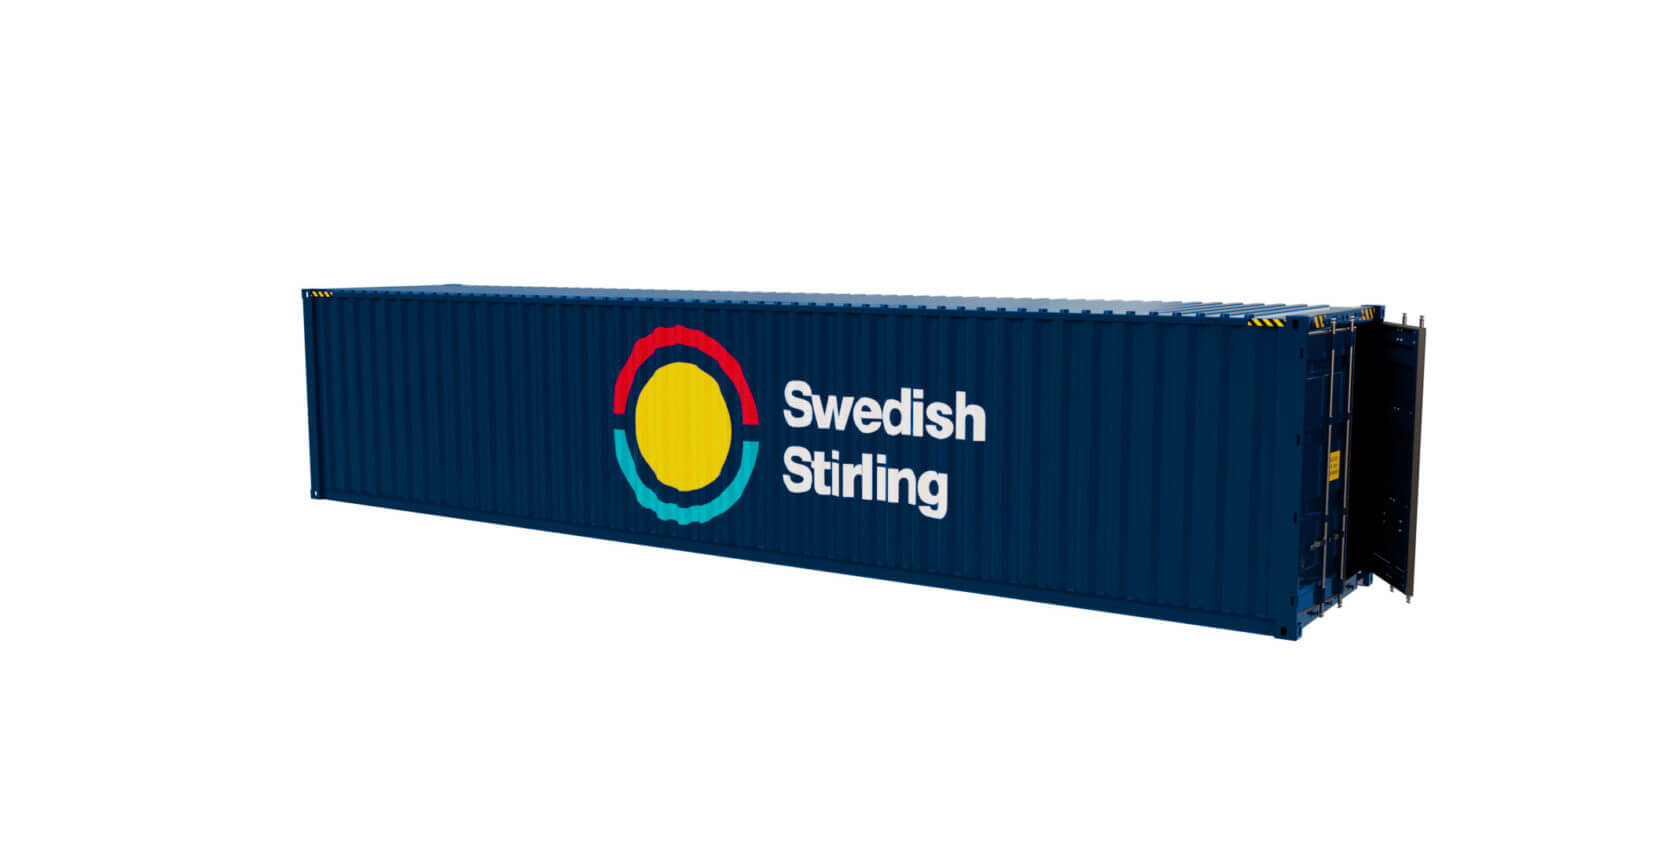 SwedishSterling container